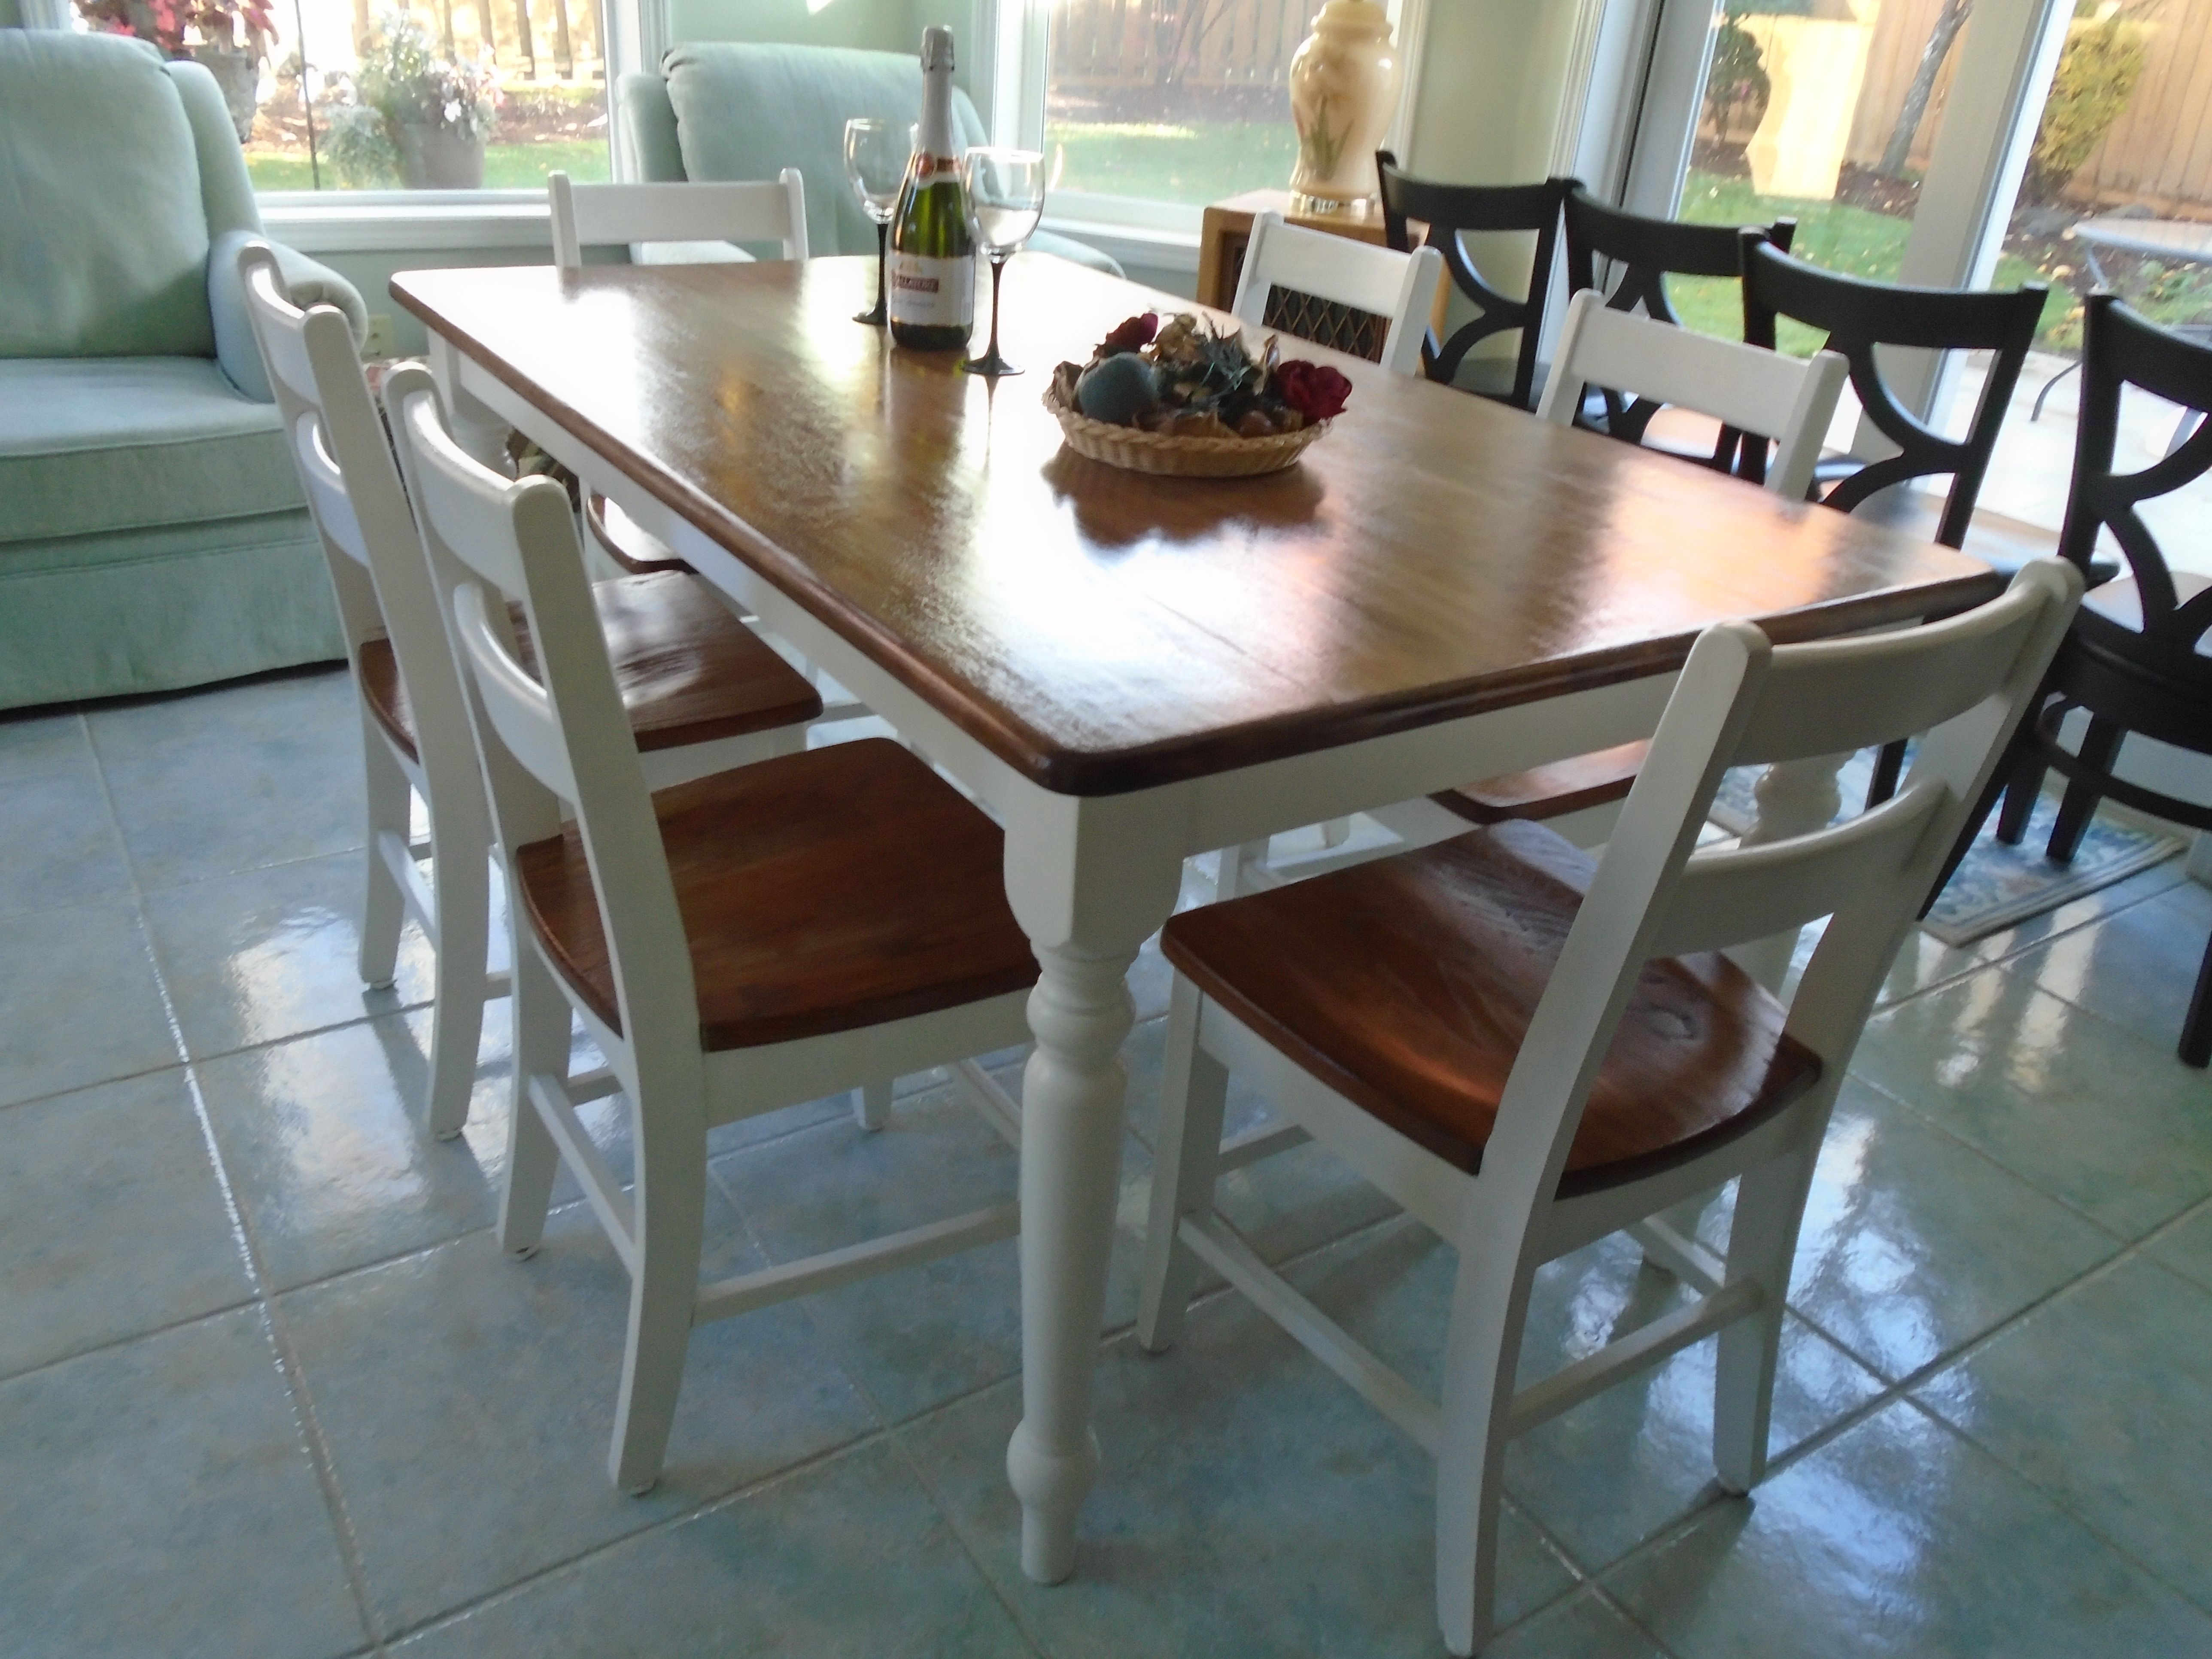 Table painted farmhouse table and chairs - Rustic Farmhouse Table Brown Stained Top White Painted Legs 6 White Chairs Brown